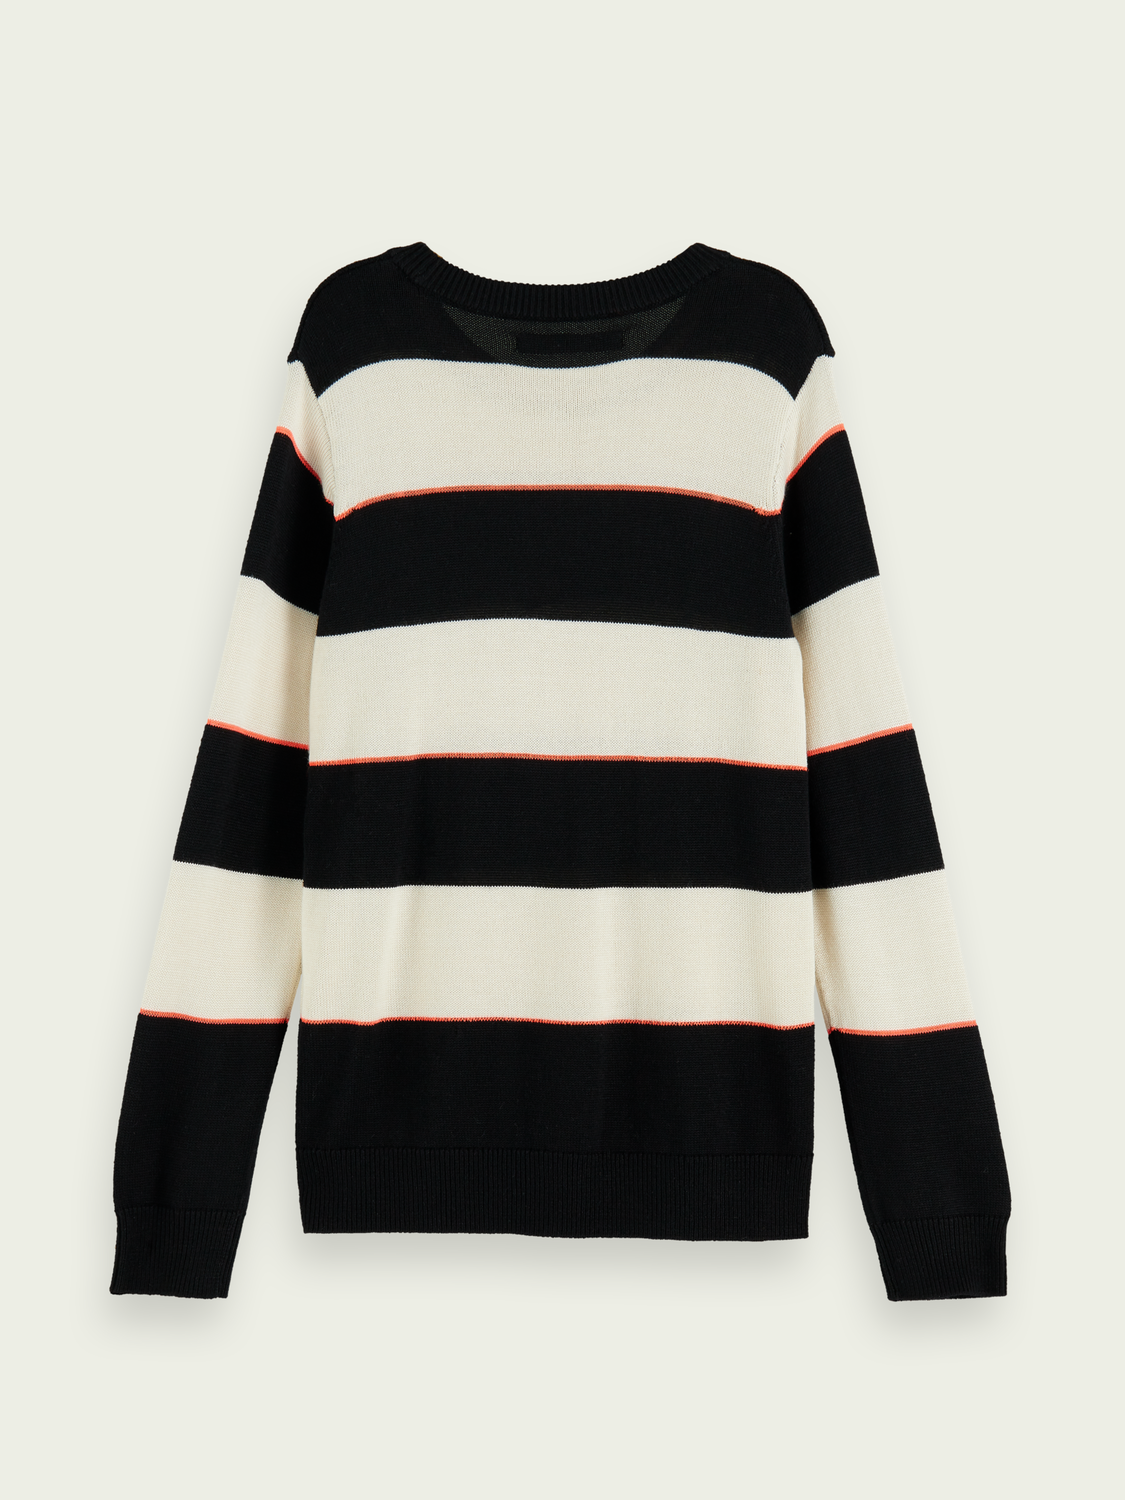 Boys Lightweight knit pullover with contrast detail